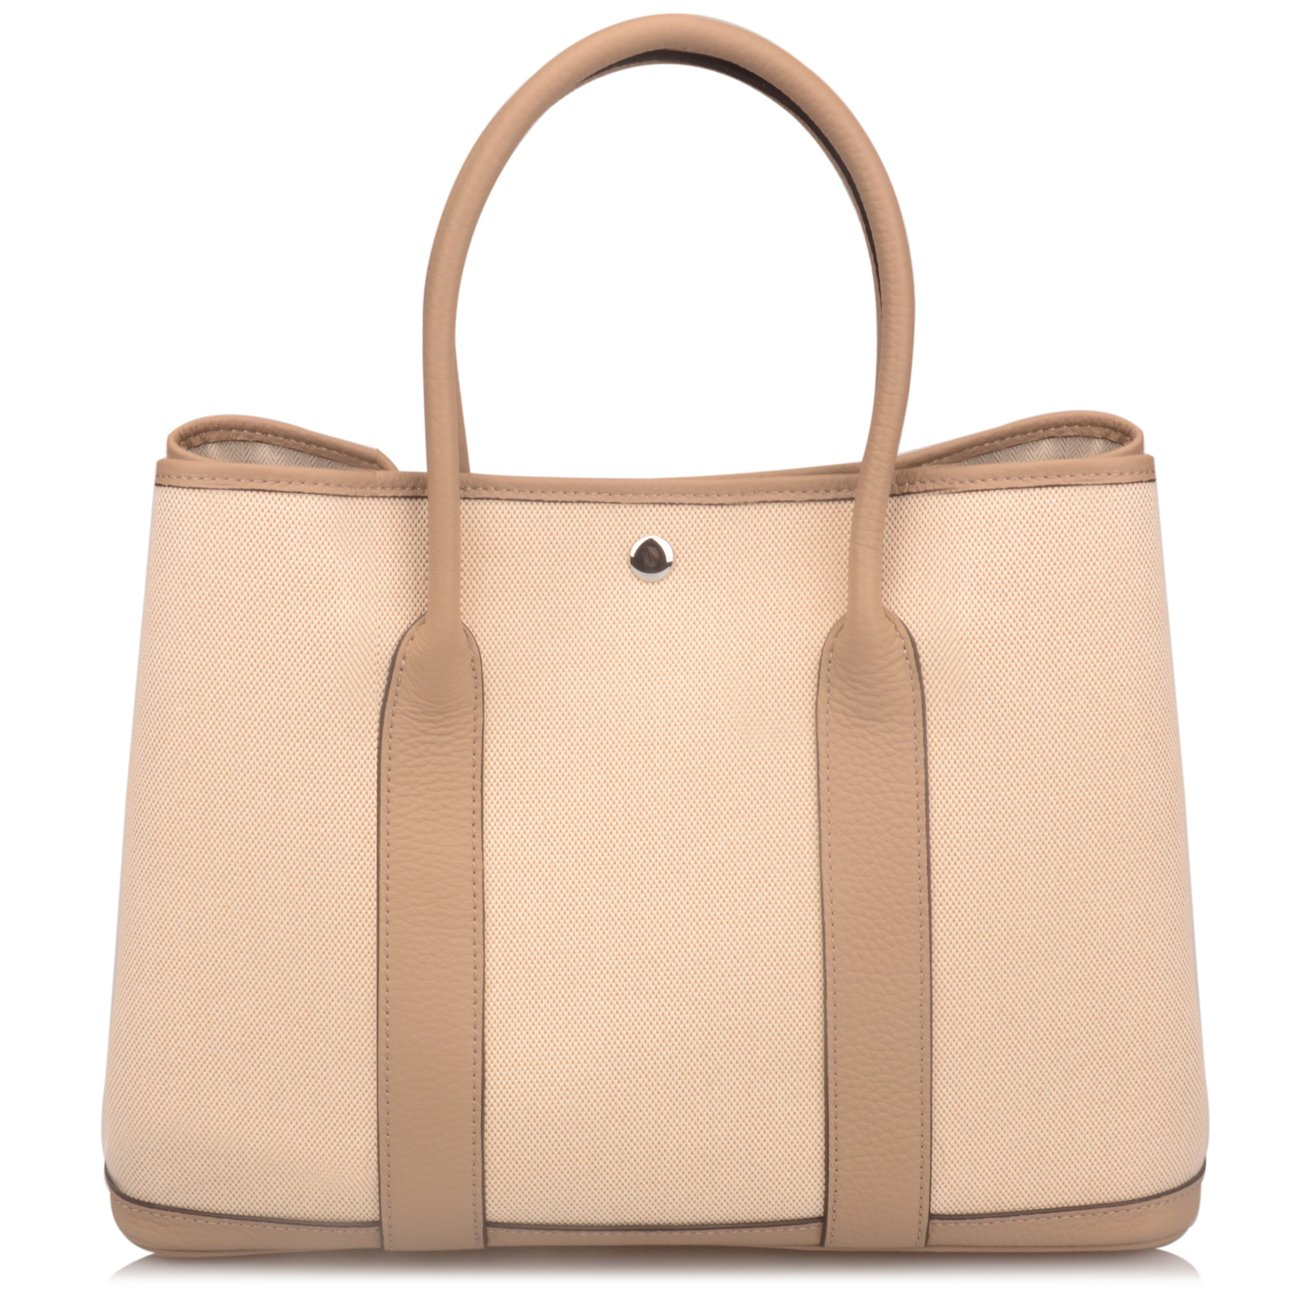 Ainifeel Women's Genuine Leather Top Handle Handbag Shopping Bag Tote Bag (Taupe(leather+canvas)) by Ainifeel (Image #2)